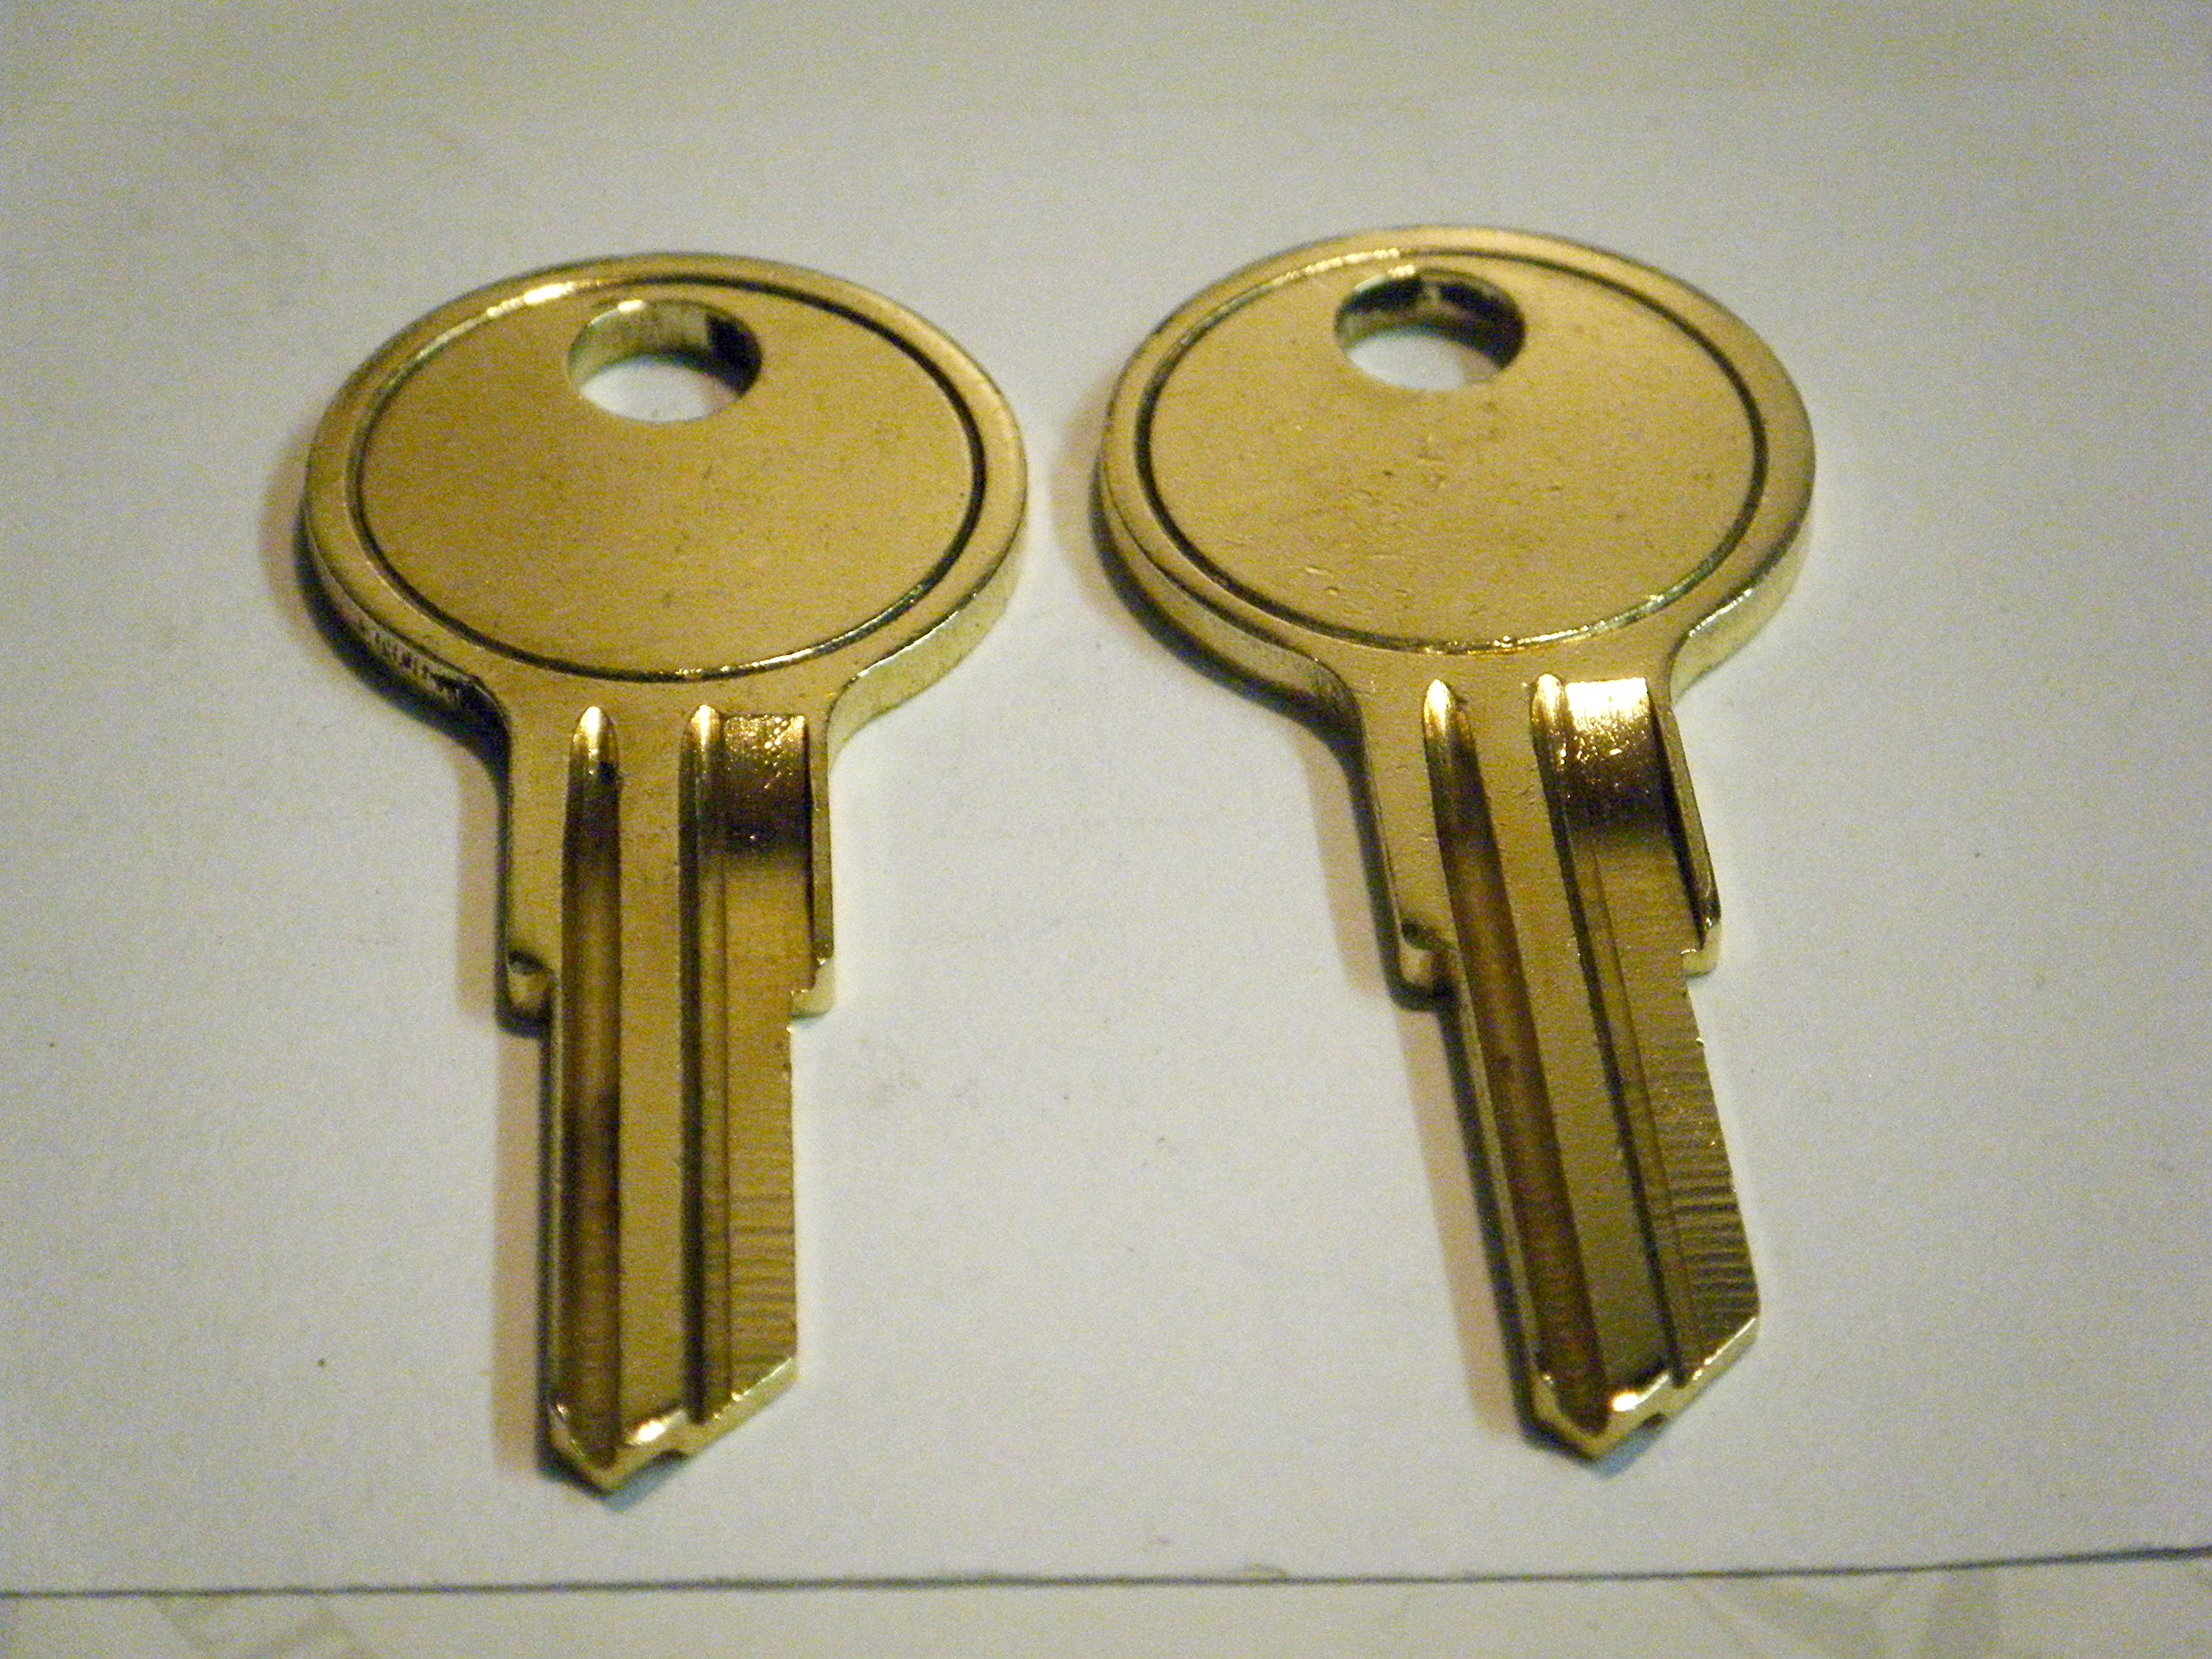 UWS Toolbox Keys Code Cut Lock/Key Numbers From CH501 To CH510 Truck Tool Box Lock Key By Ordering These Keys You Are Stating You Are The Owner. (CH505)